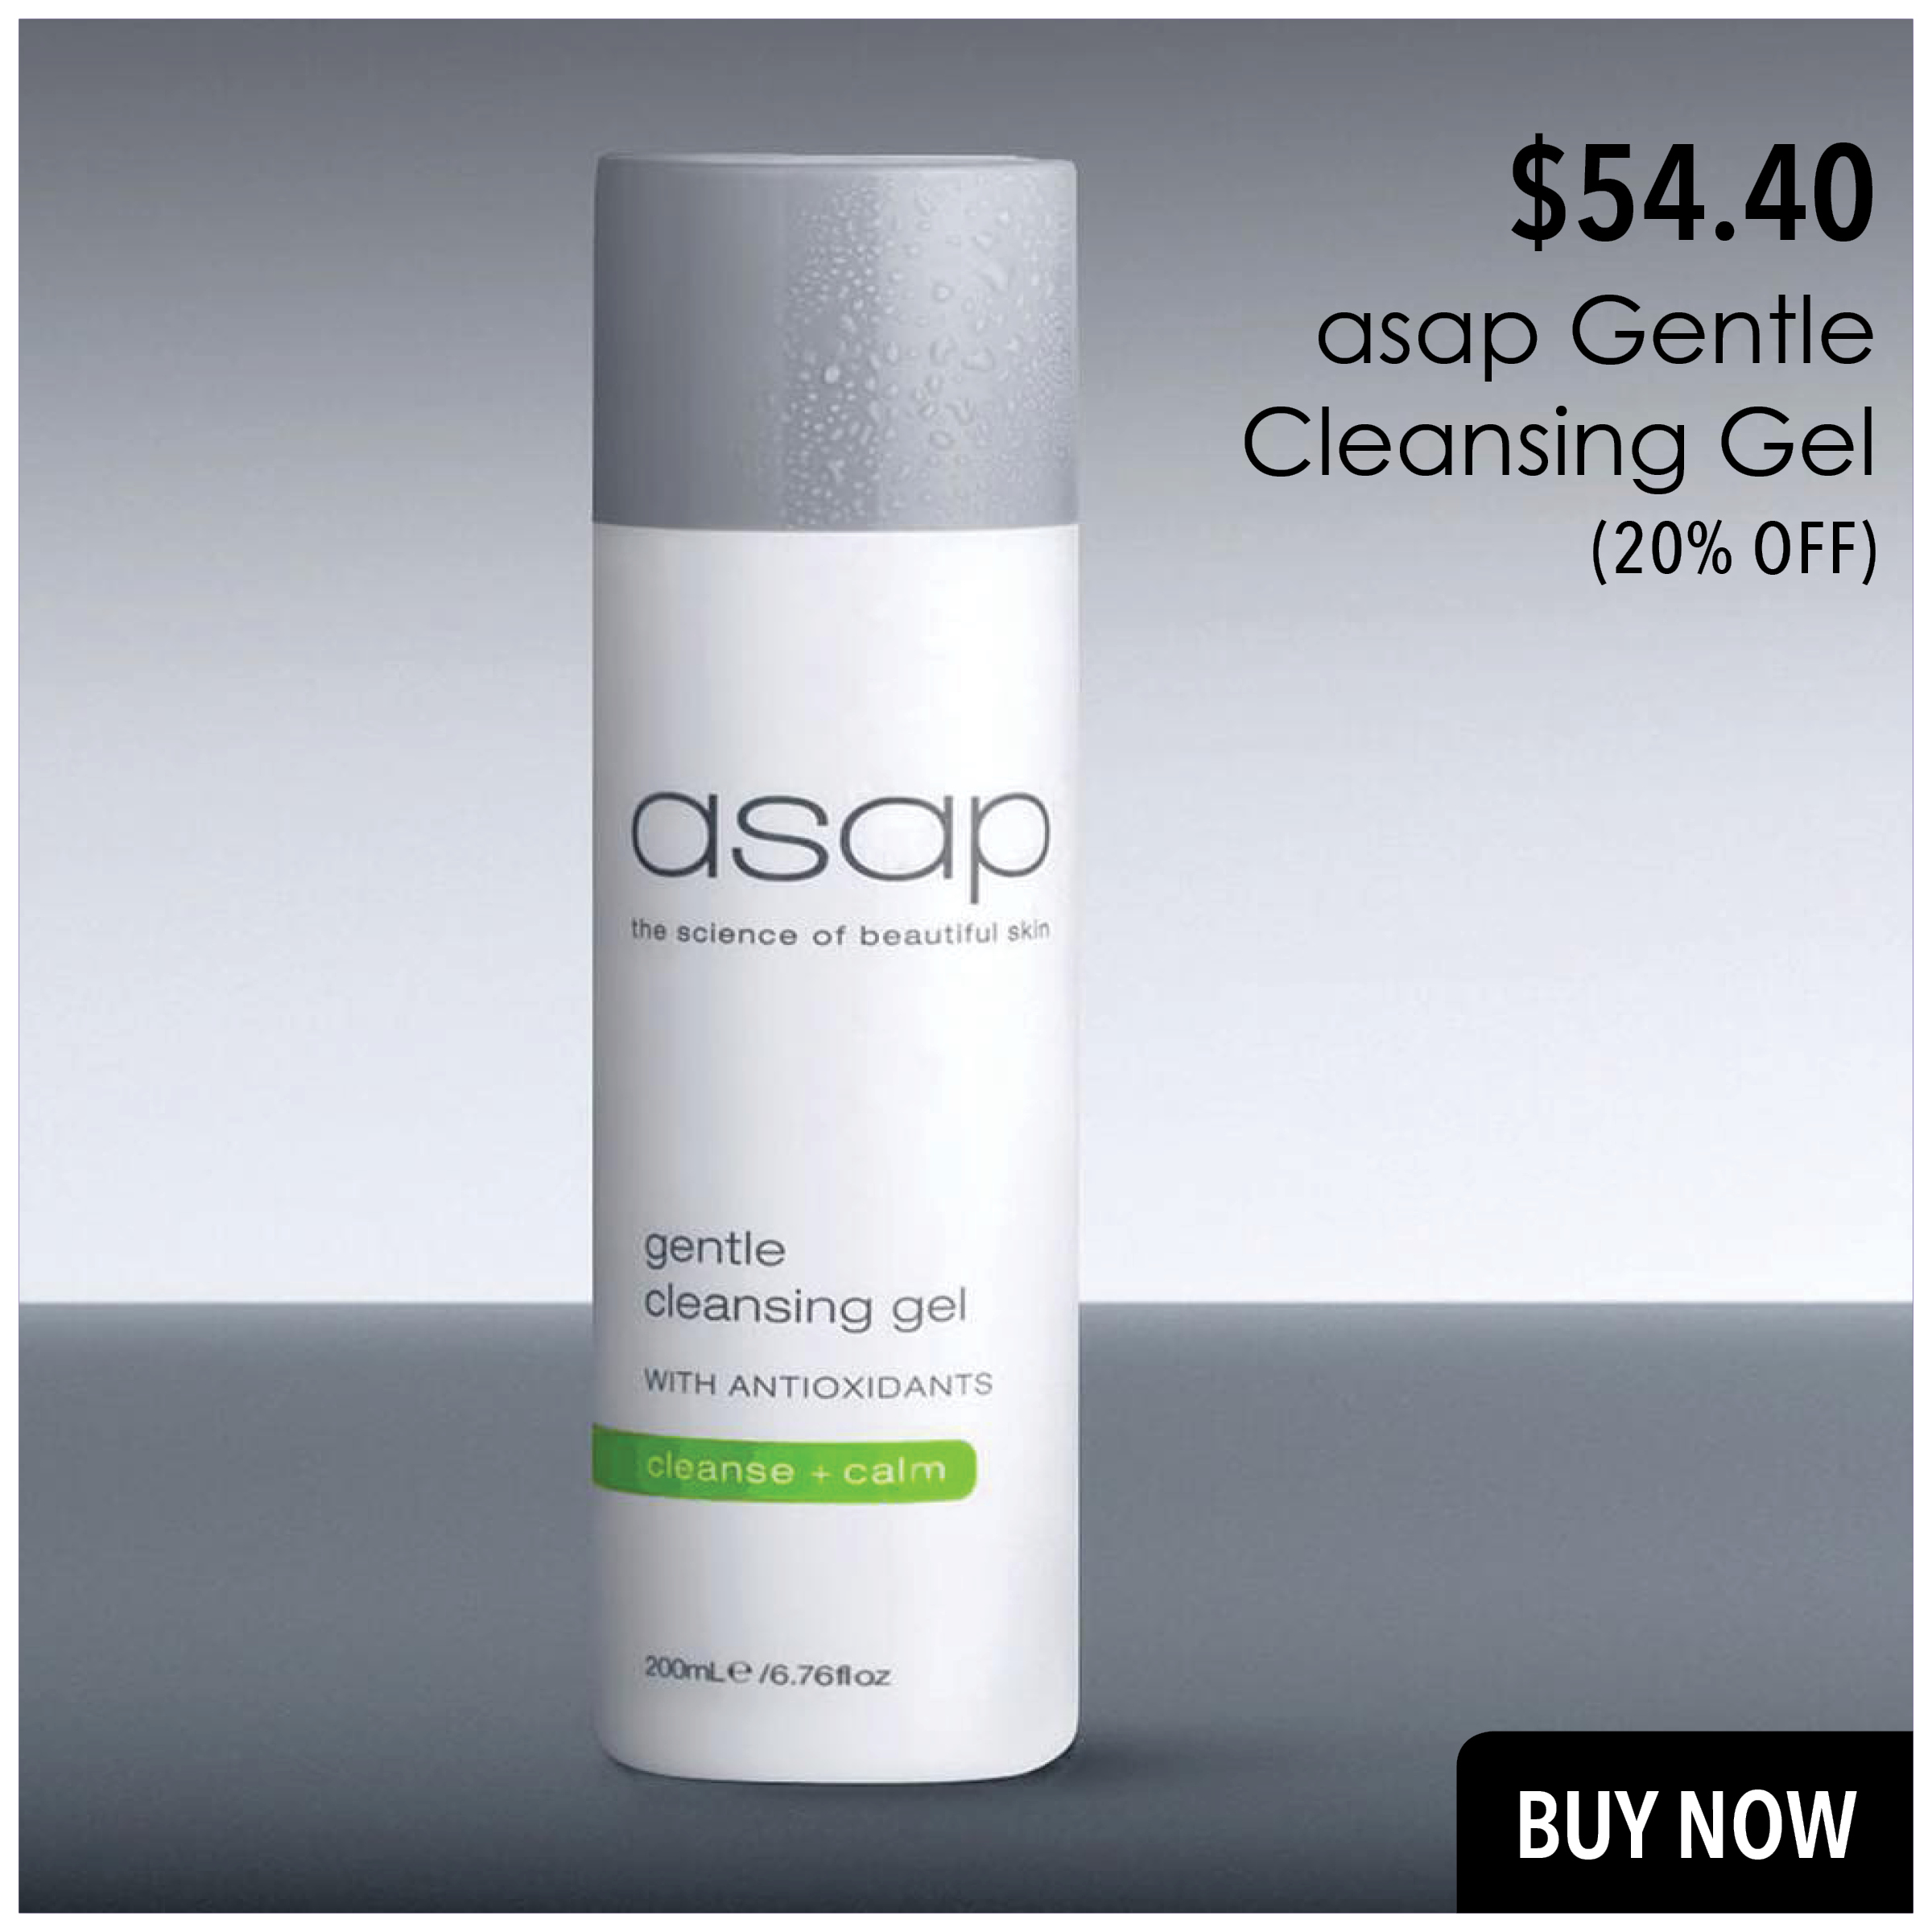 asap Gentle Cleansing Gel 200ml best price online in NZ at Prodermal NZ.